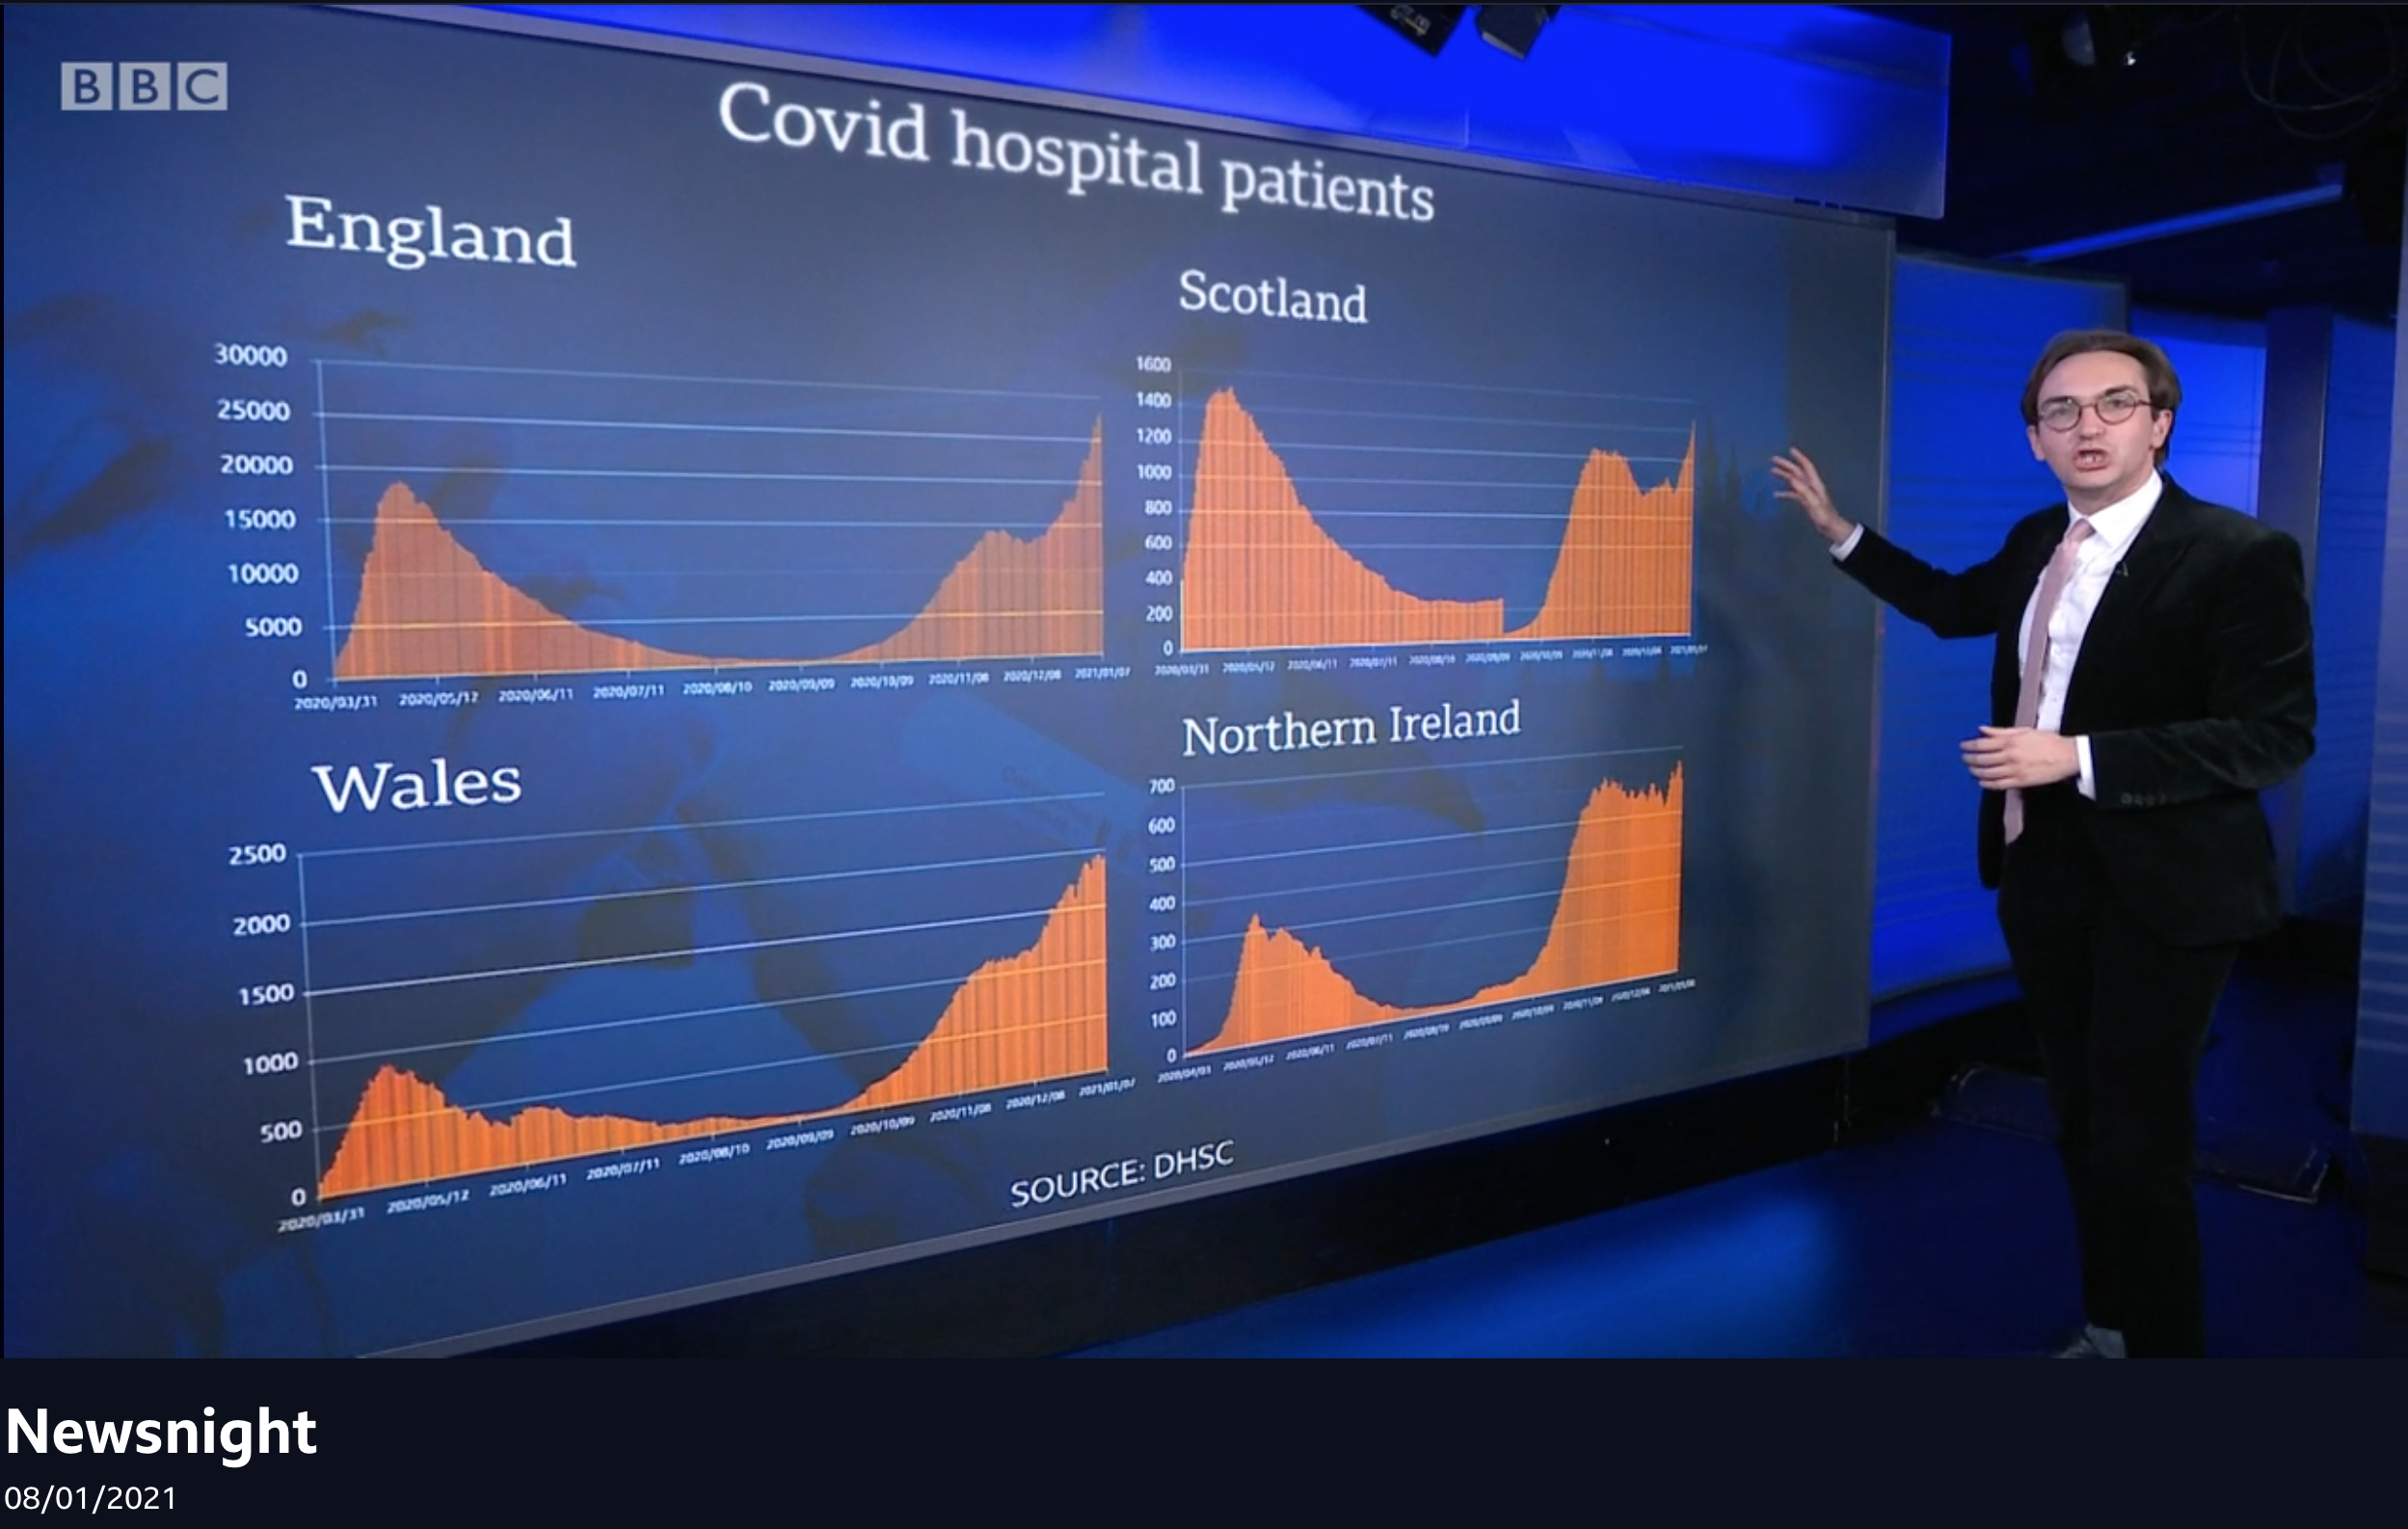 Newsnight charts of COVID-19 hospitlisations in four UK nations